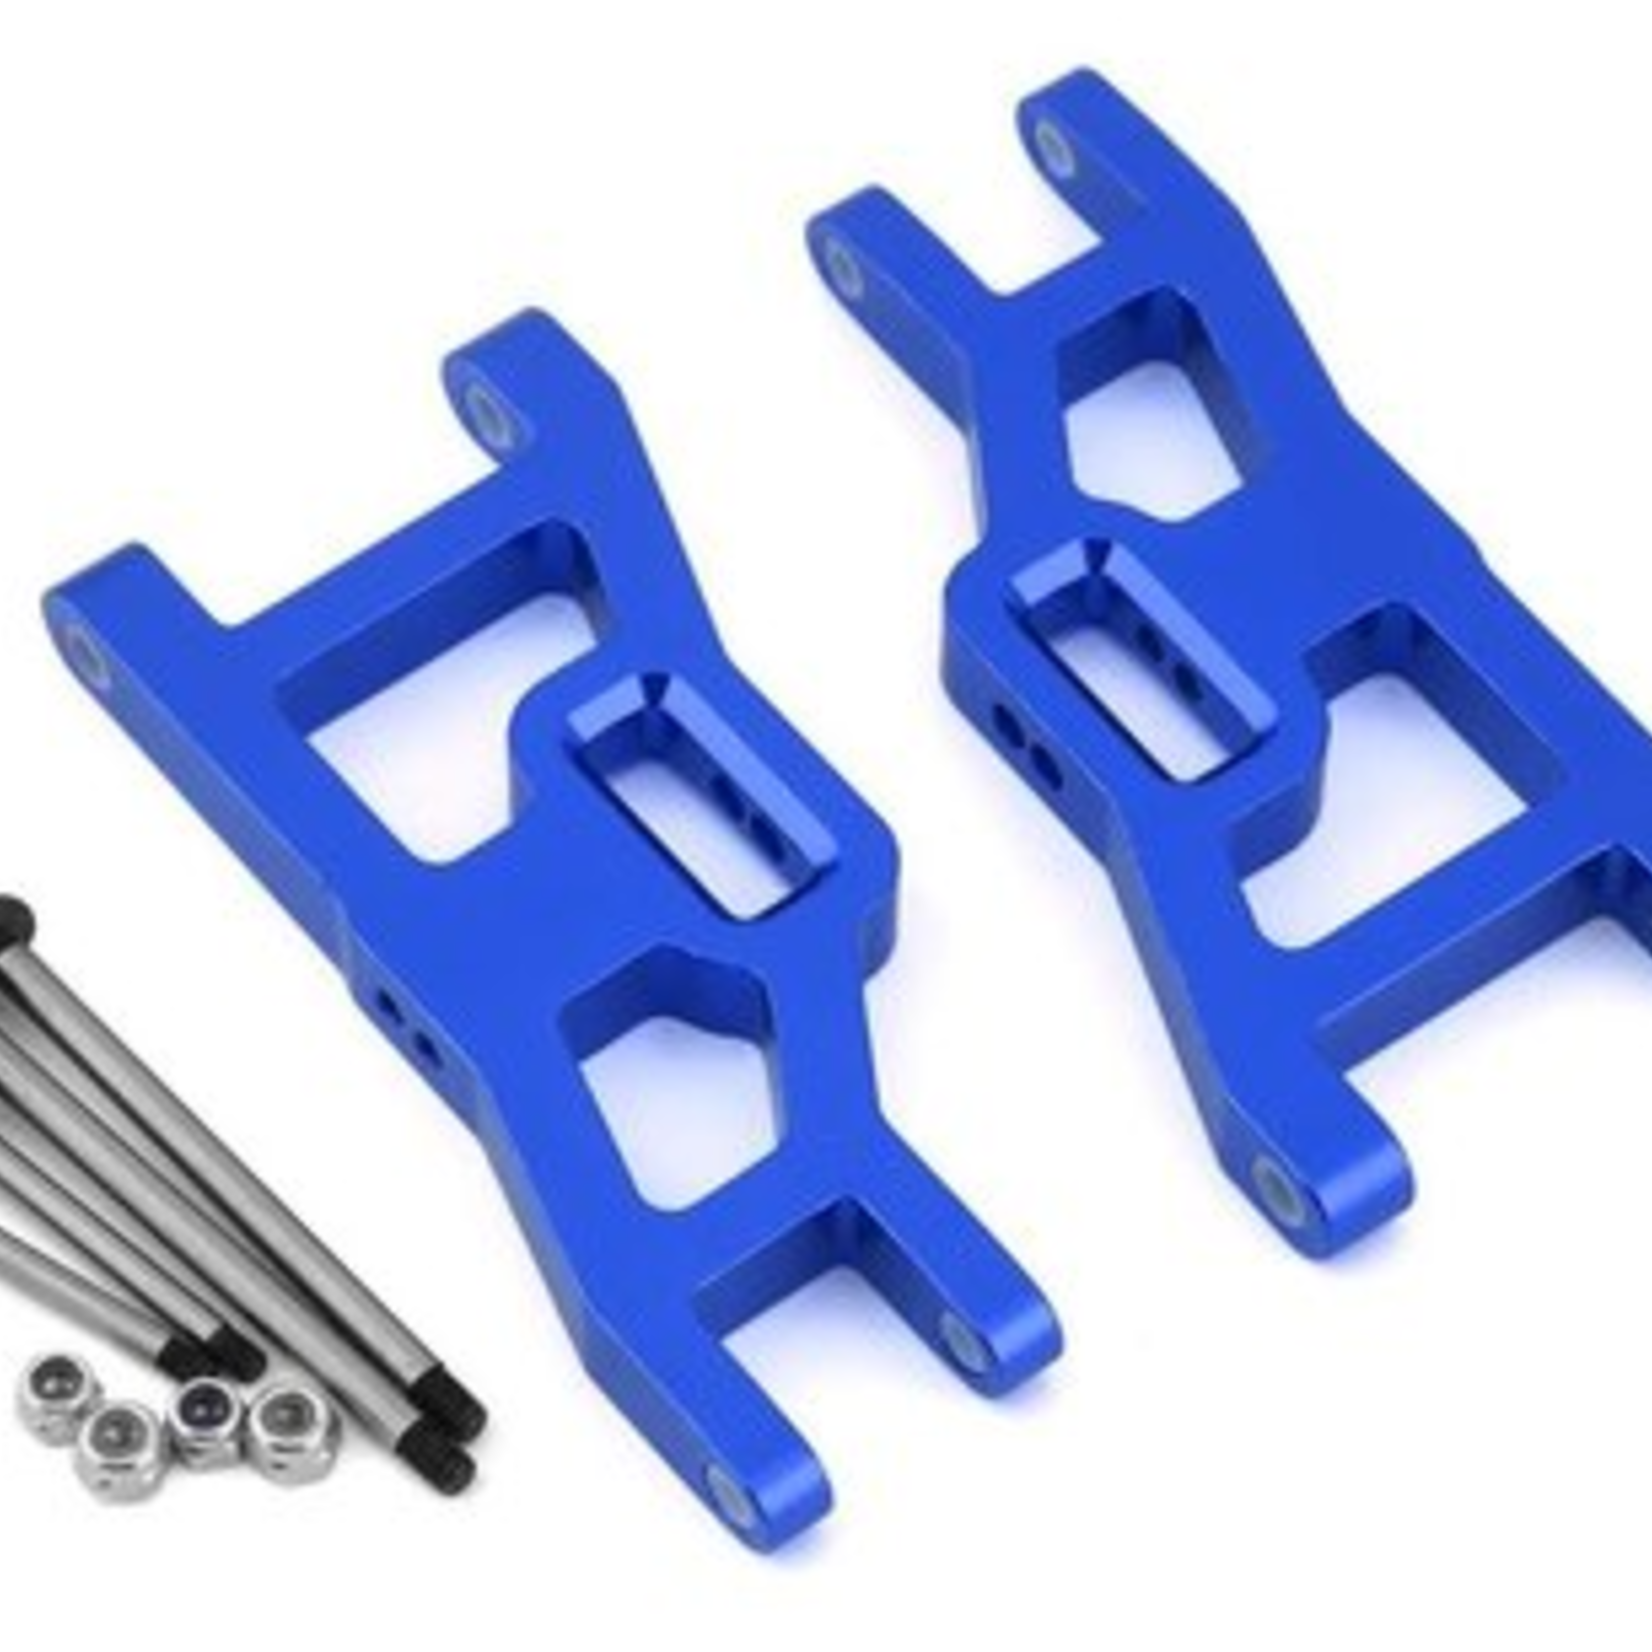 ST Racing Concepts SPTST3631XB ST Racing Concepts Heavy Duty Front Suspension Arms Kit w/ Lock-Nut Hinge-Pins, for Traxxas Rustler/Stampede (Blue)